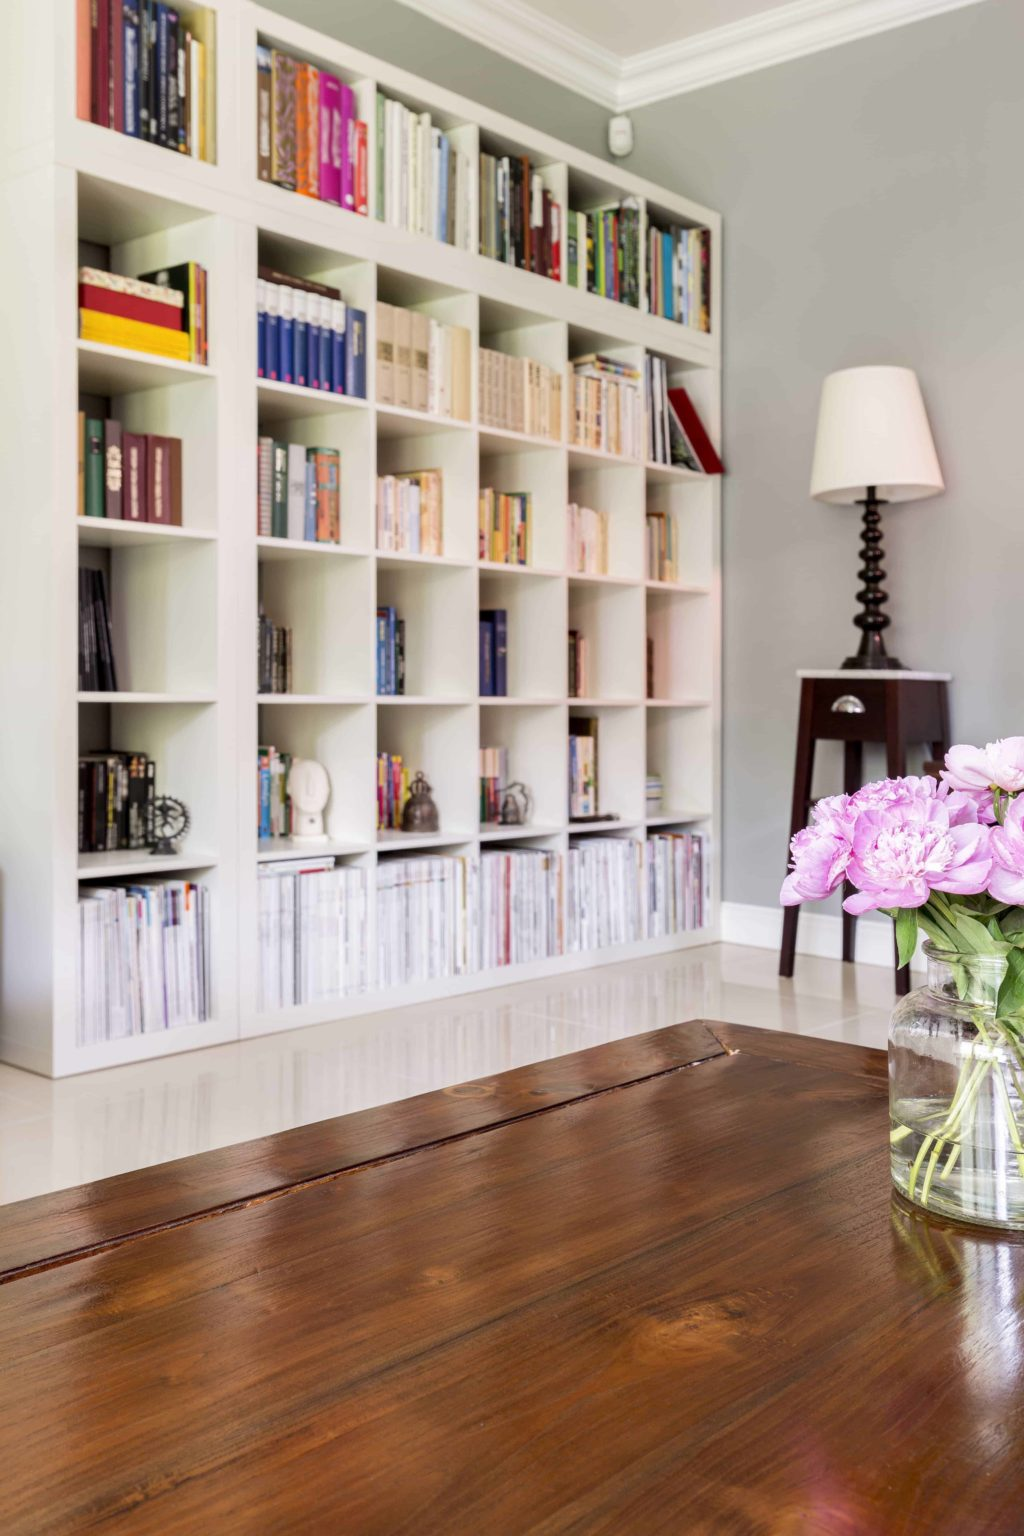 tidy-up-odds-and-ends-shelves